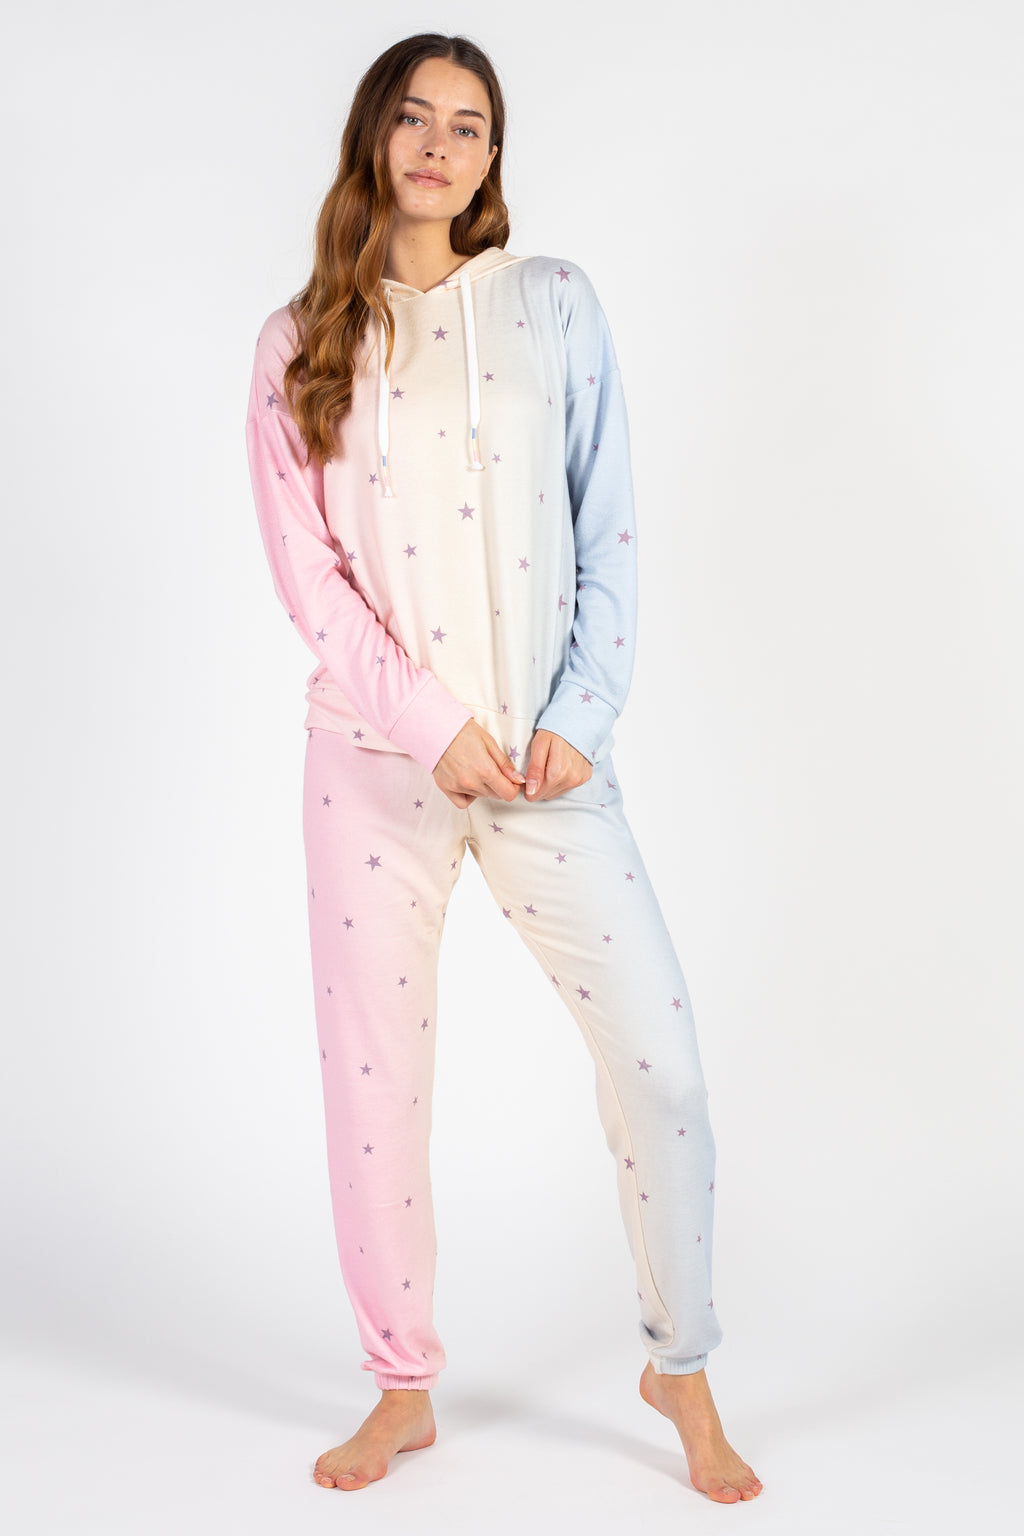 Cotton Candy Party Stars Hoodie - honey